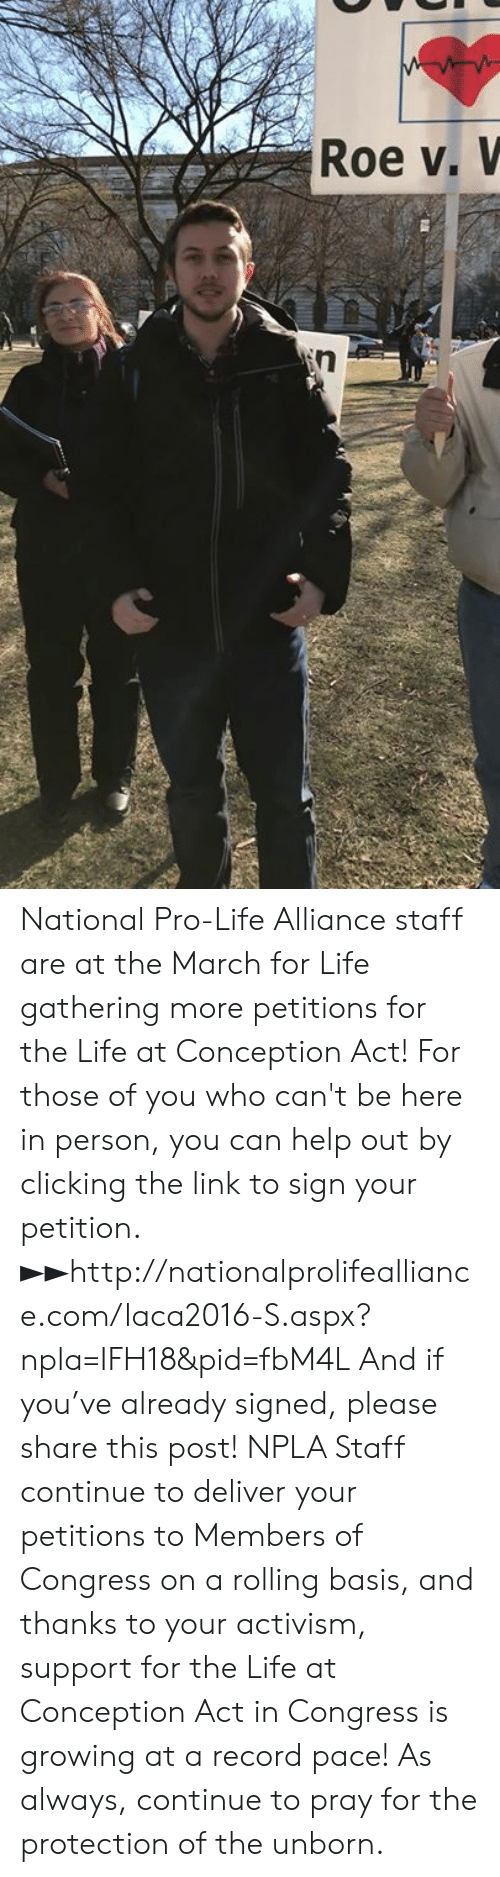 Npla: Roe v, V National Pro-Life Alliance staff are at the March for Life gathering more petitions for the Life at Conception Act!  For those of you who can't be here in person, you can help out by clicking the link to sign your petition. ►►http://nationalprolifealliance.com/laca2016-S.aspx?npla=IFH18&pid=fbM4L  And if you've already signed, please share this post!  NPLA Staff continue to deliver your petitions to Members of Congress on a rolling basis, and thanks to your activism, support for the Life at Conception Act in Congress is growing at a record pace!  As always, continue to pray for the protection of the unborn.